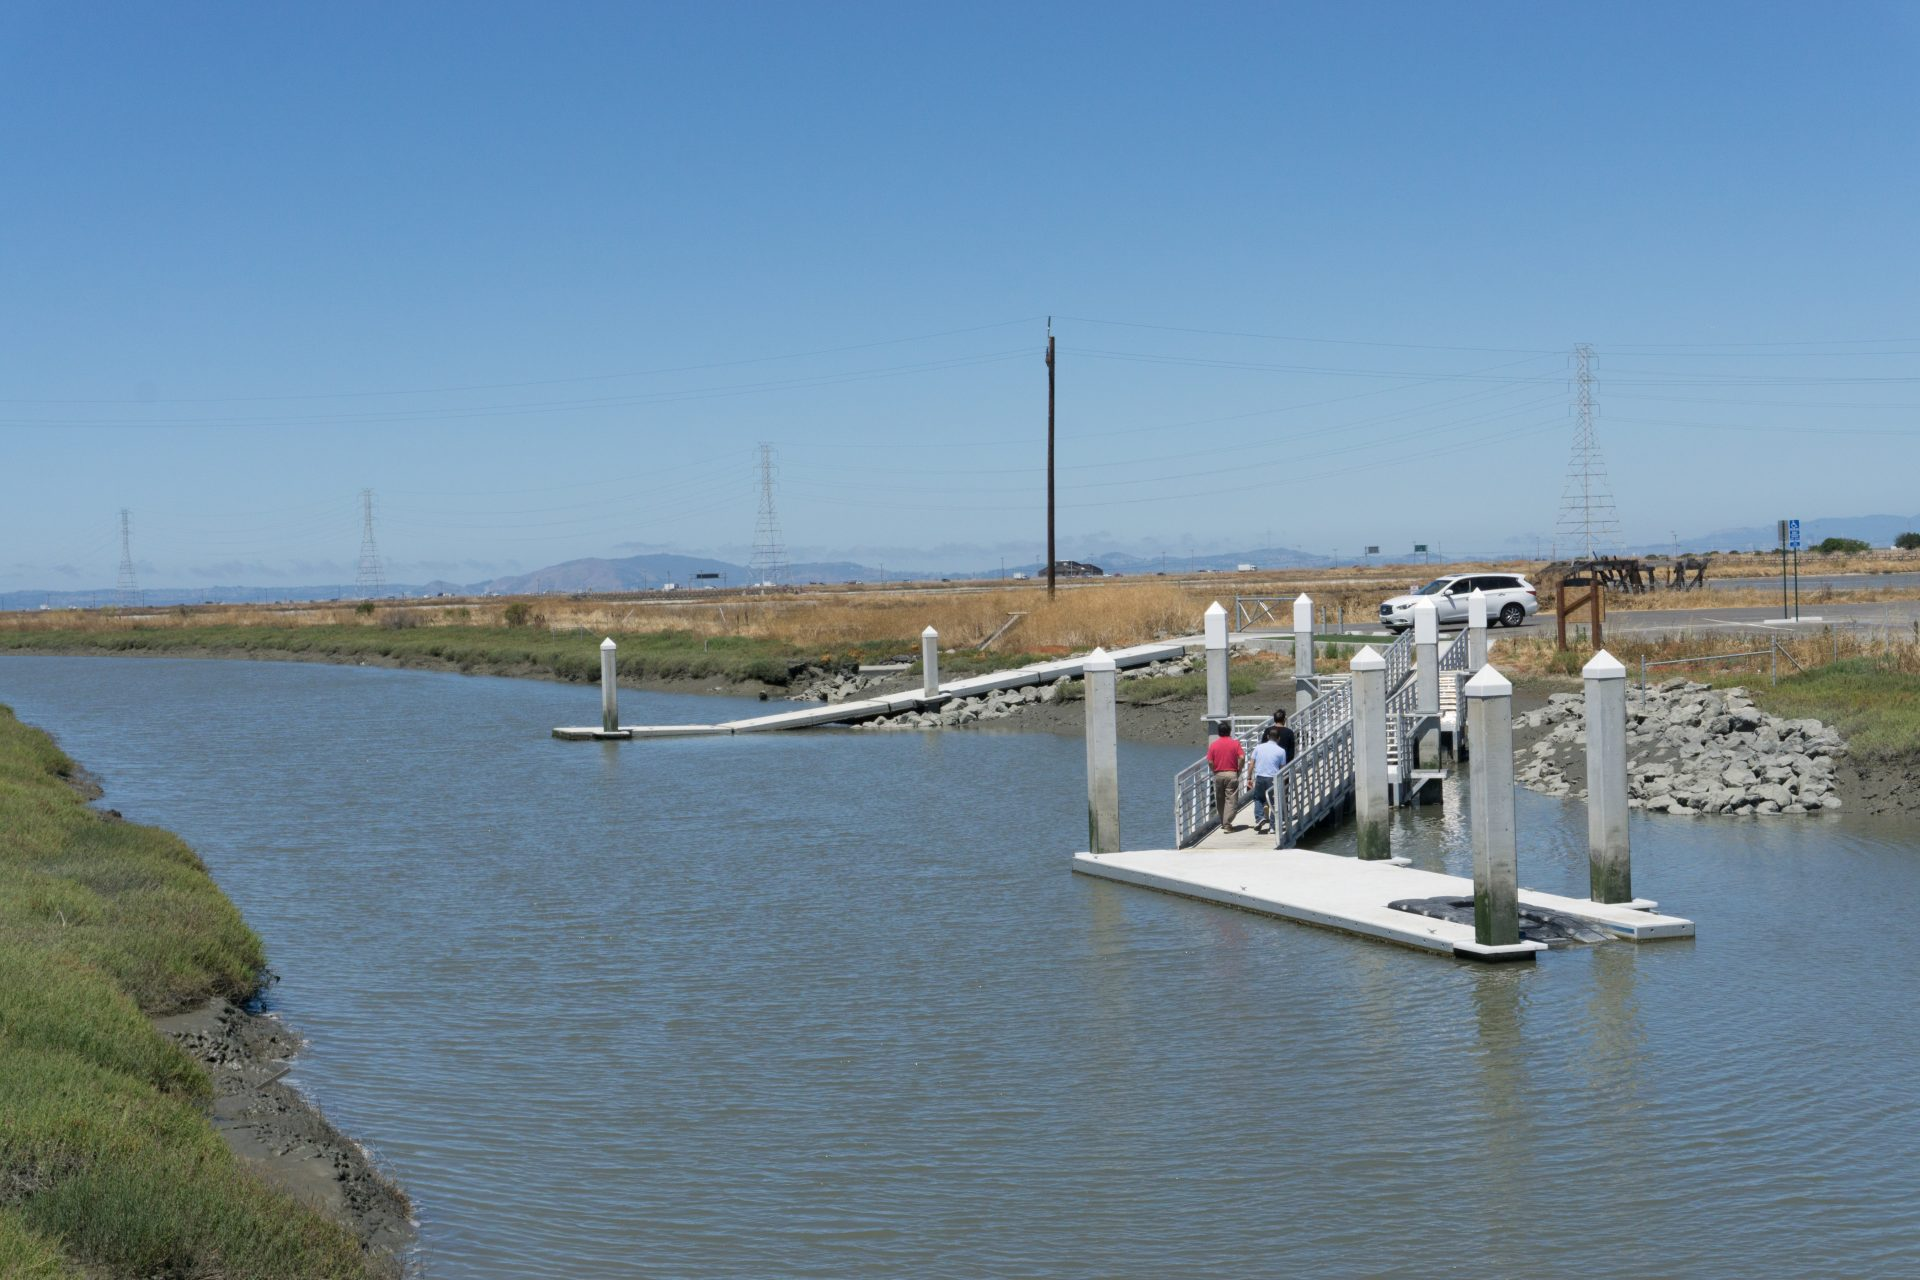 Ramps down to floating dock on narrow channel